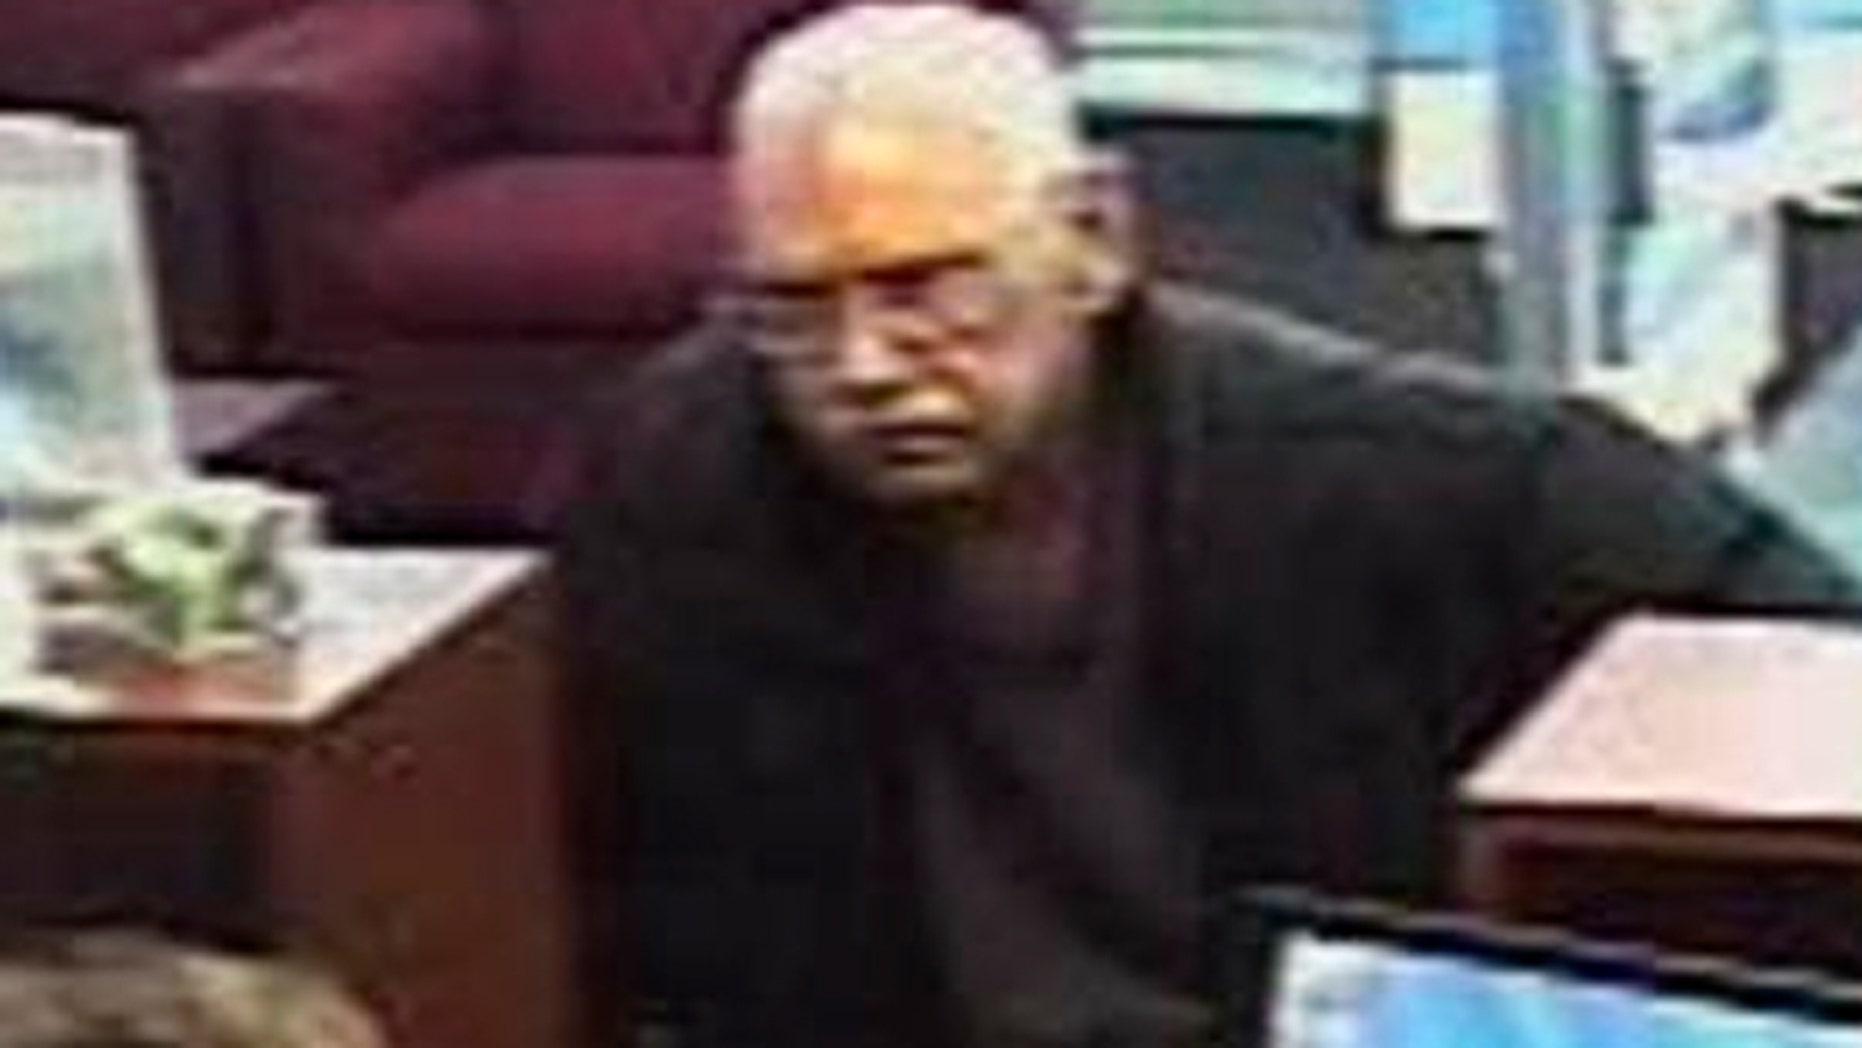 FILE: Surveillance photo provided by the FBI shows 73-year-old Walter Unbehaun, an ex-convict from Rock Hill., S.C., during a bank robbery in Niles, Ill. Unbehaun allegedly told investigators he intended to get caught so he could live his final years behind bars.